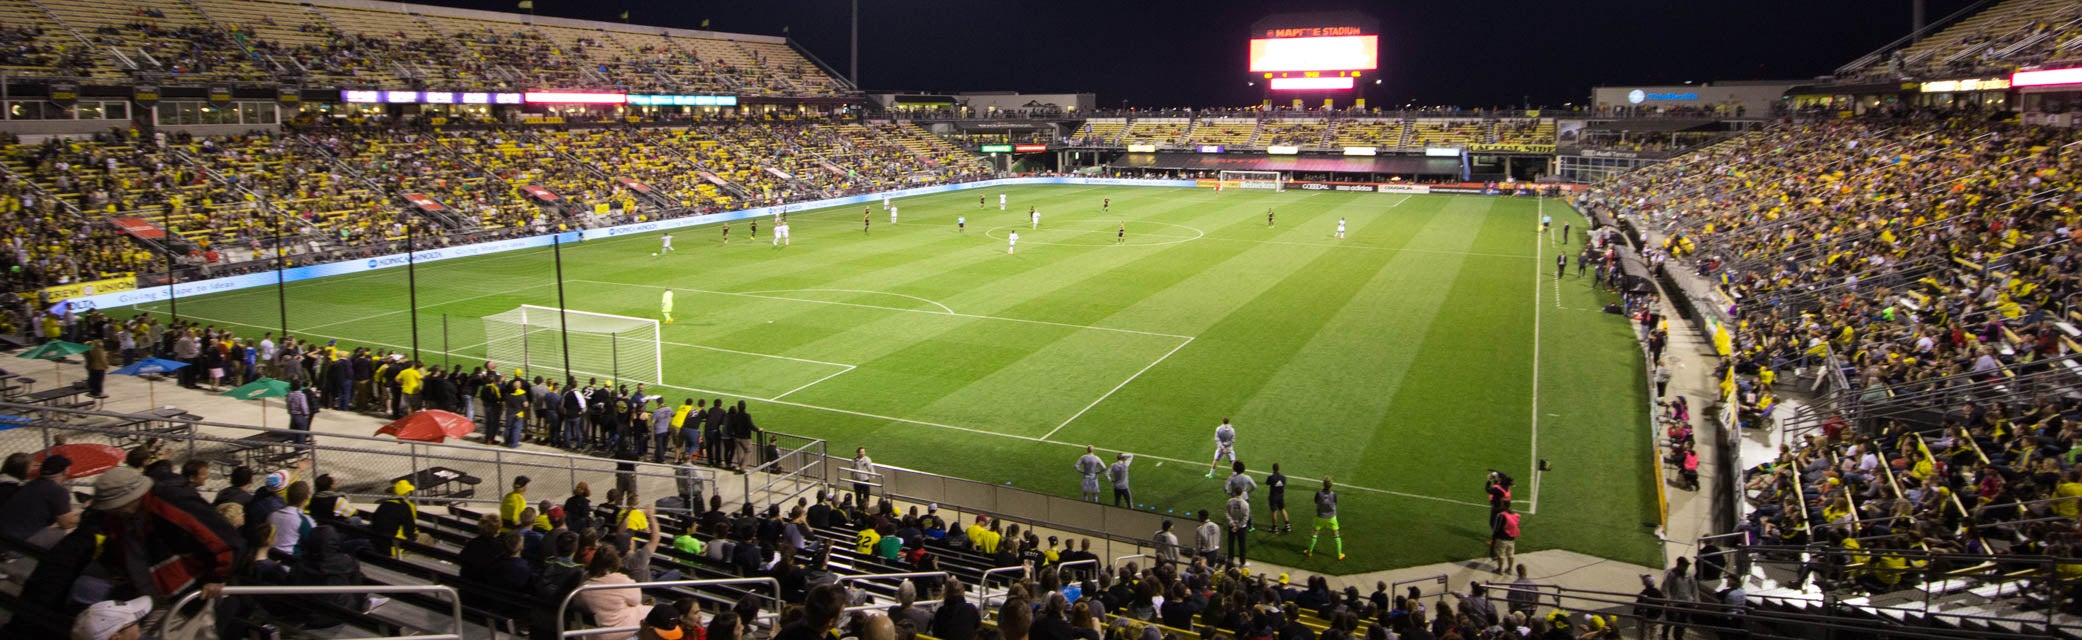 Seat view from North Endline